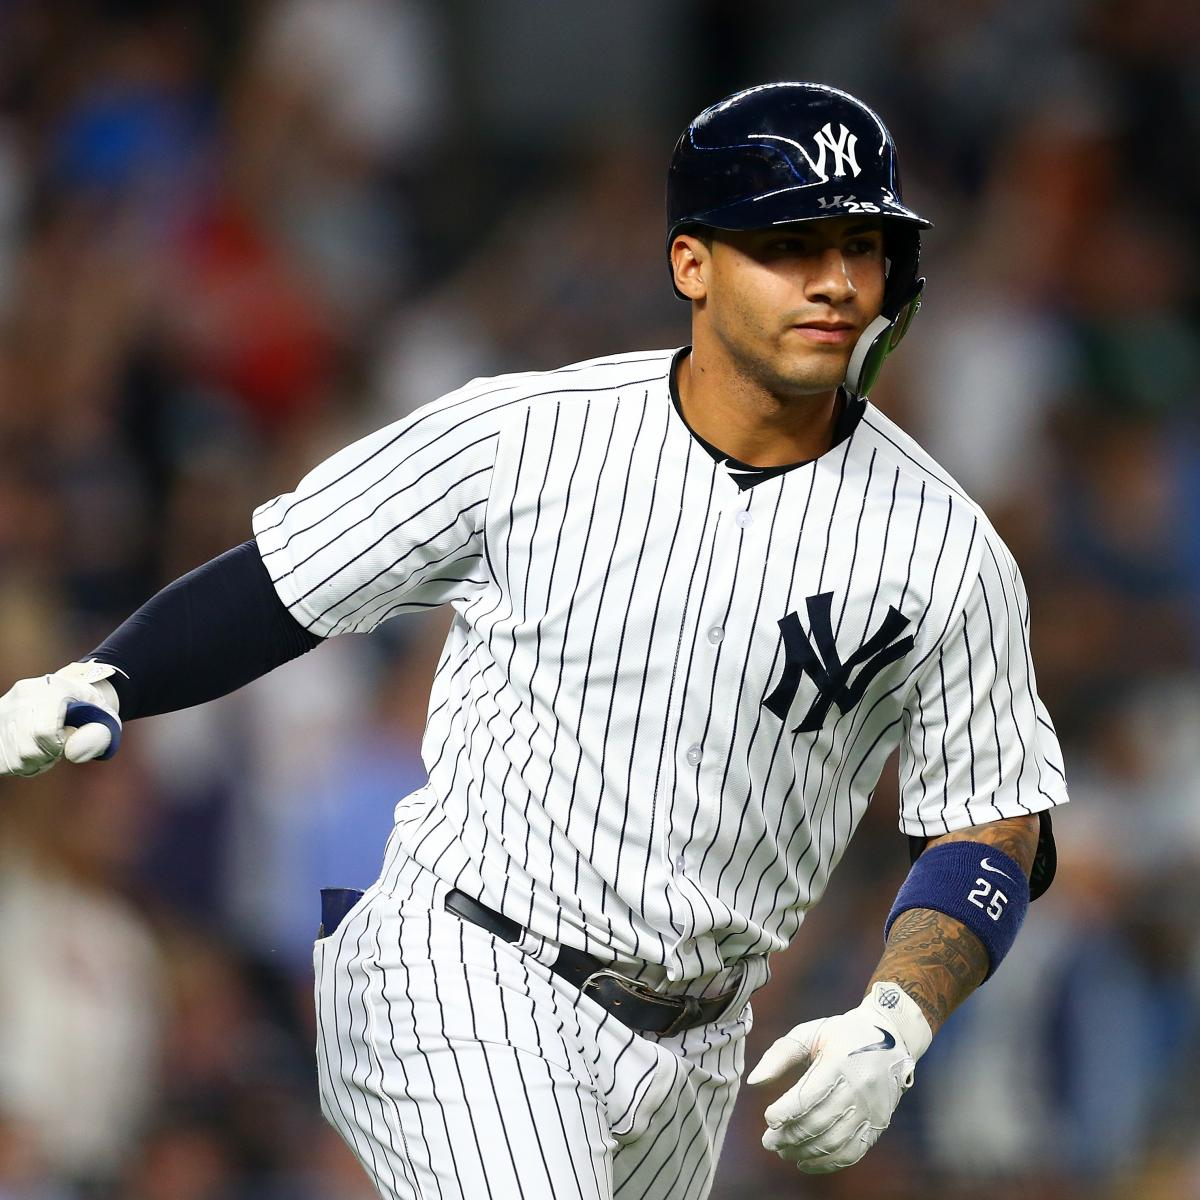 Yankees Rookie Gleyber Torres Placed On 10-Day DL With Hip